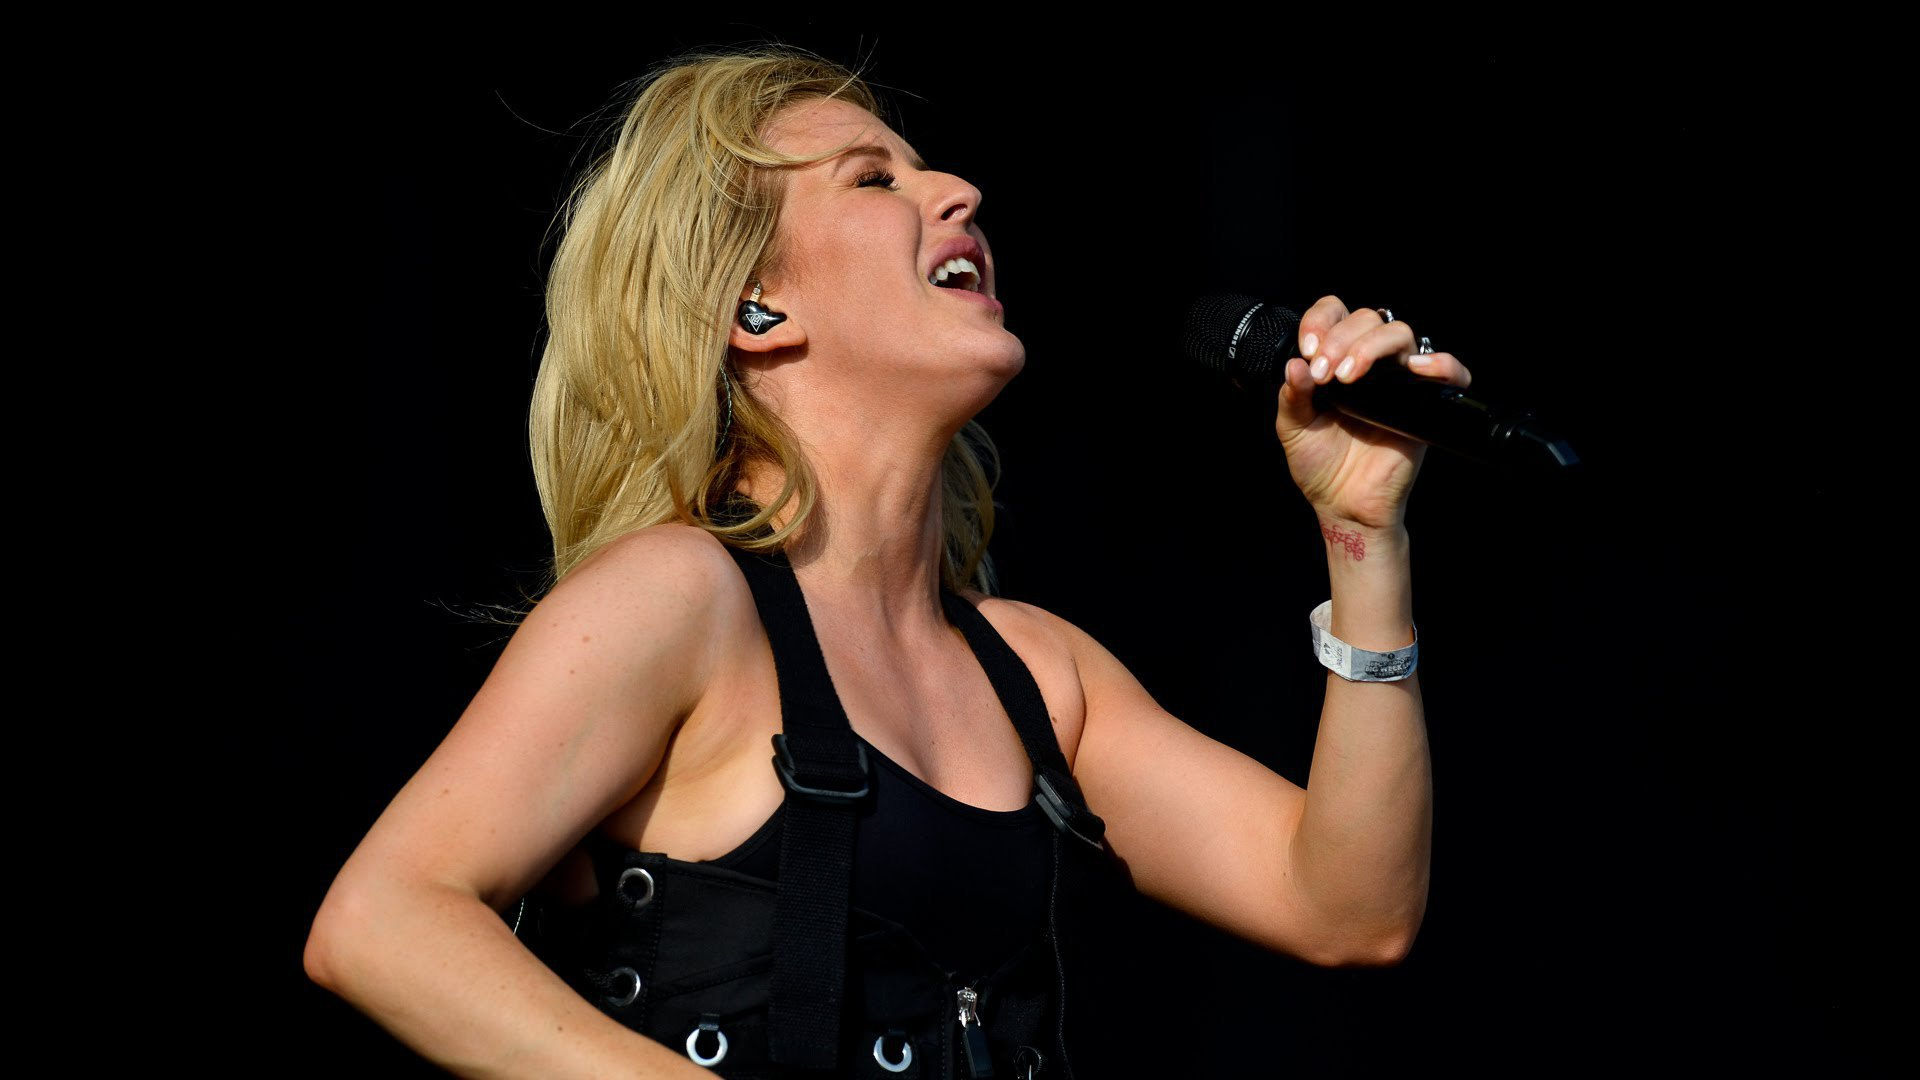 Ellie Goulding Sexy Wallpapers